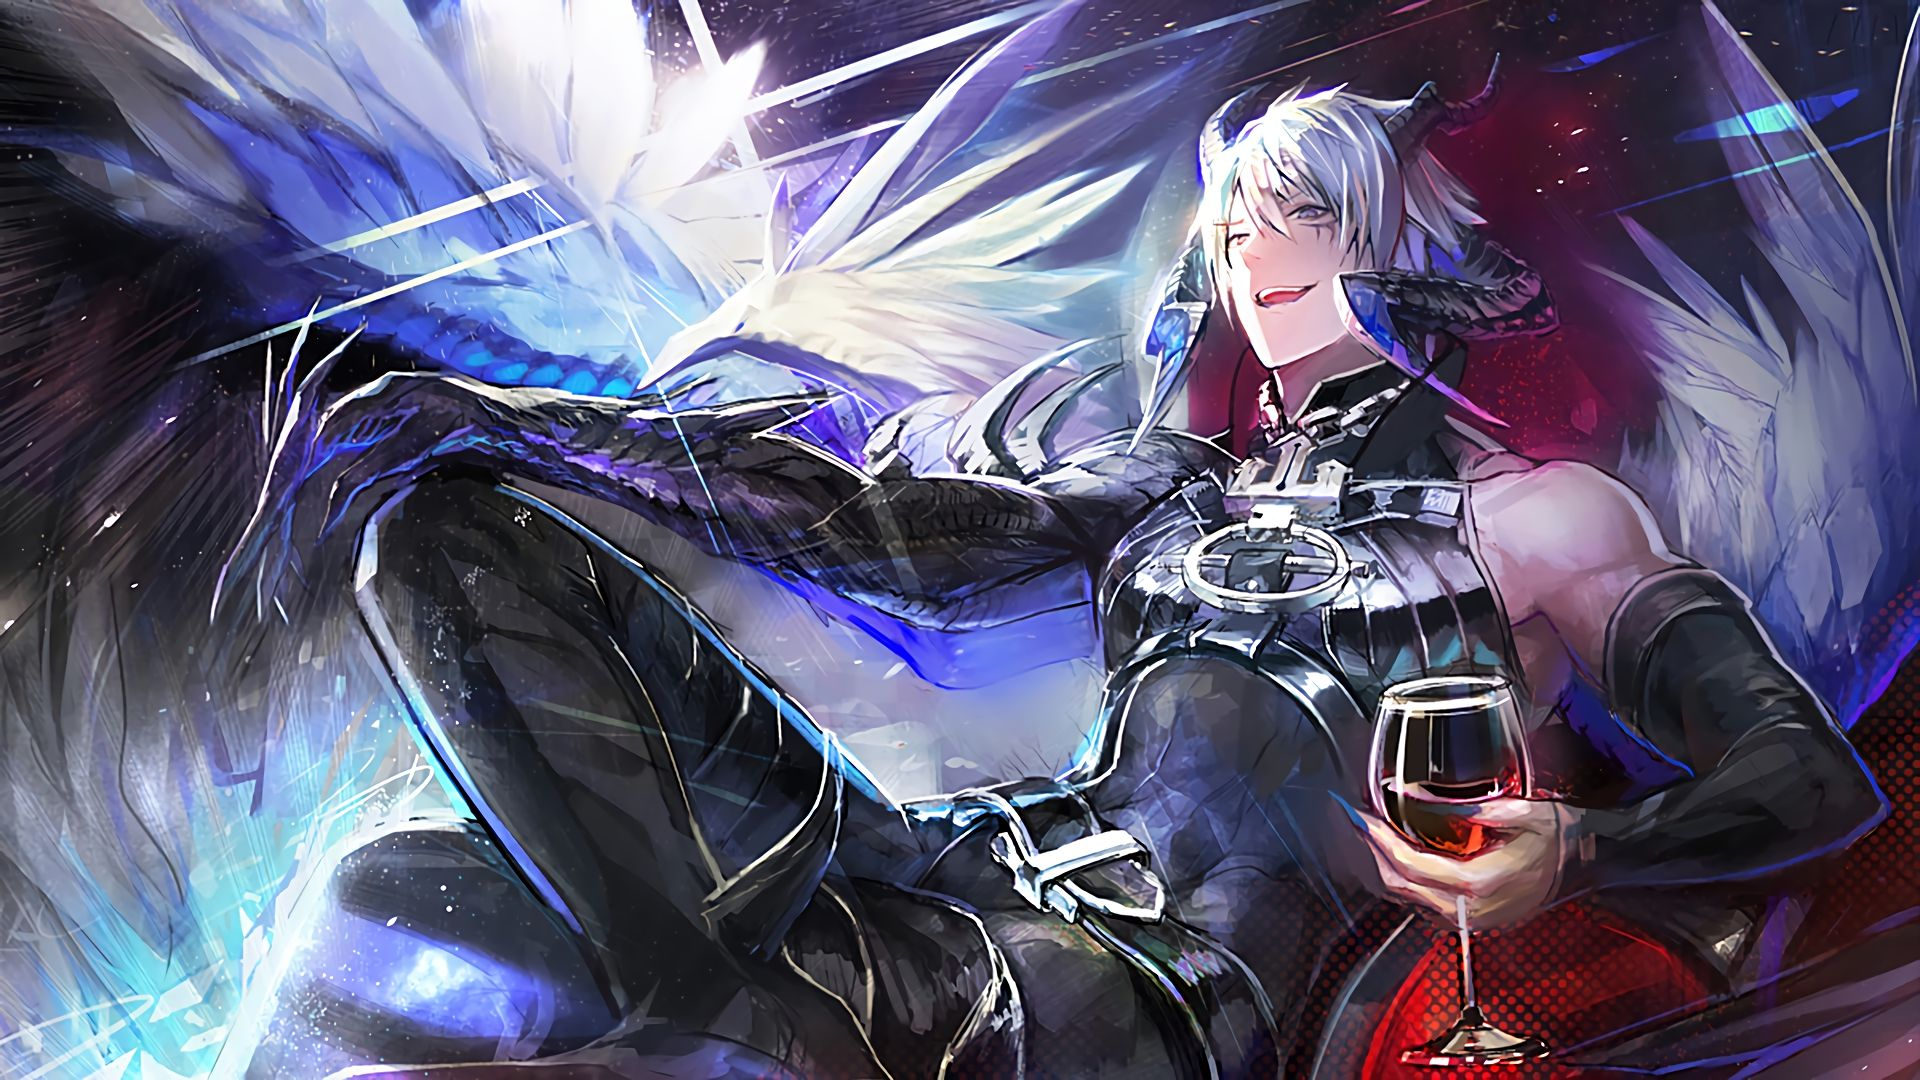 Azazel | Shingeki no Bahamut (Rage of the Bahamut) | 5 Wallpapers